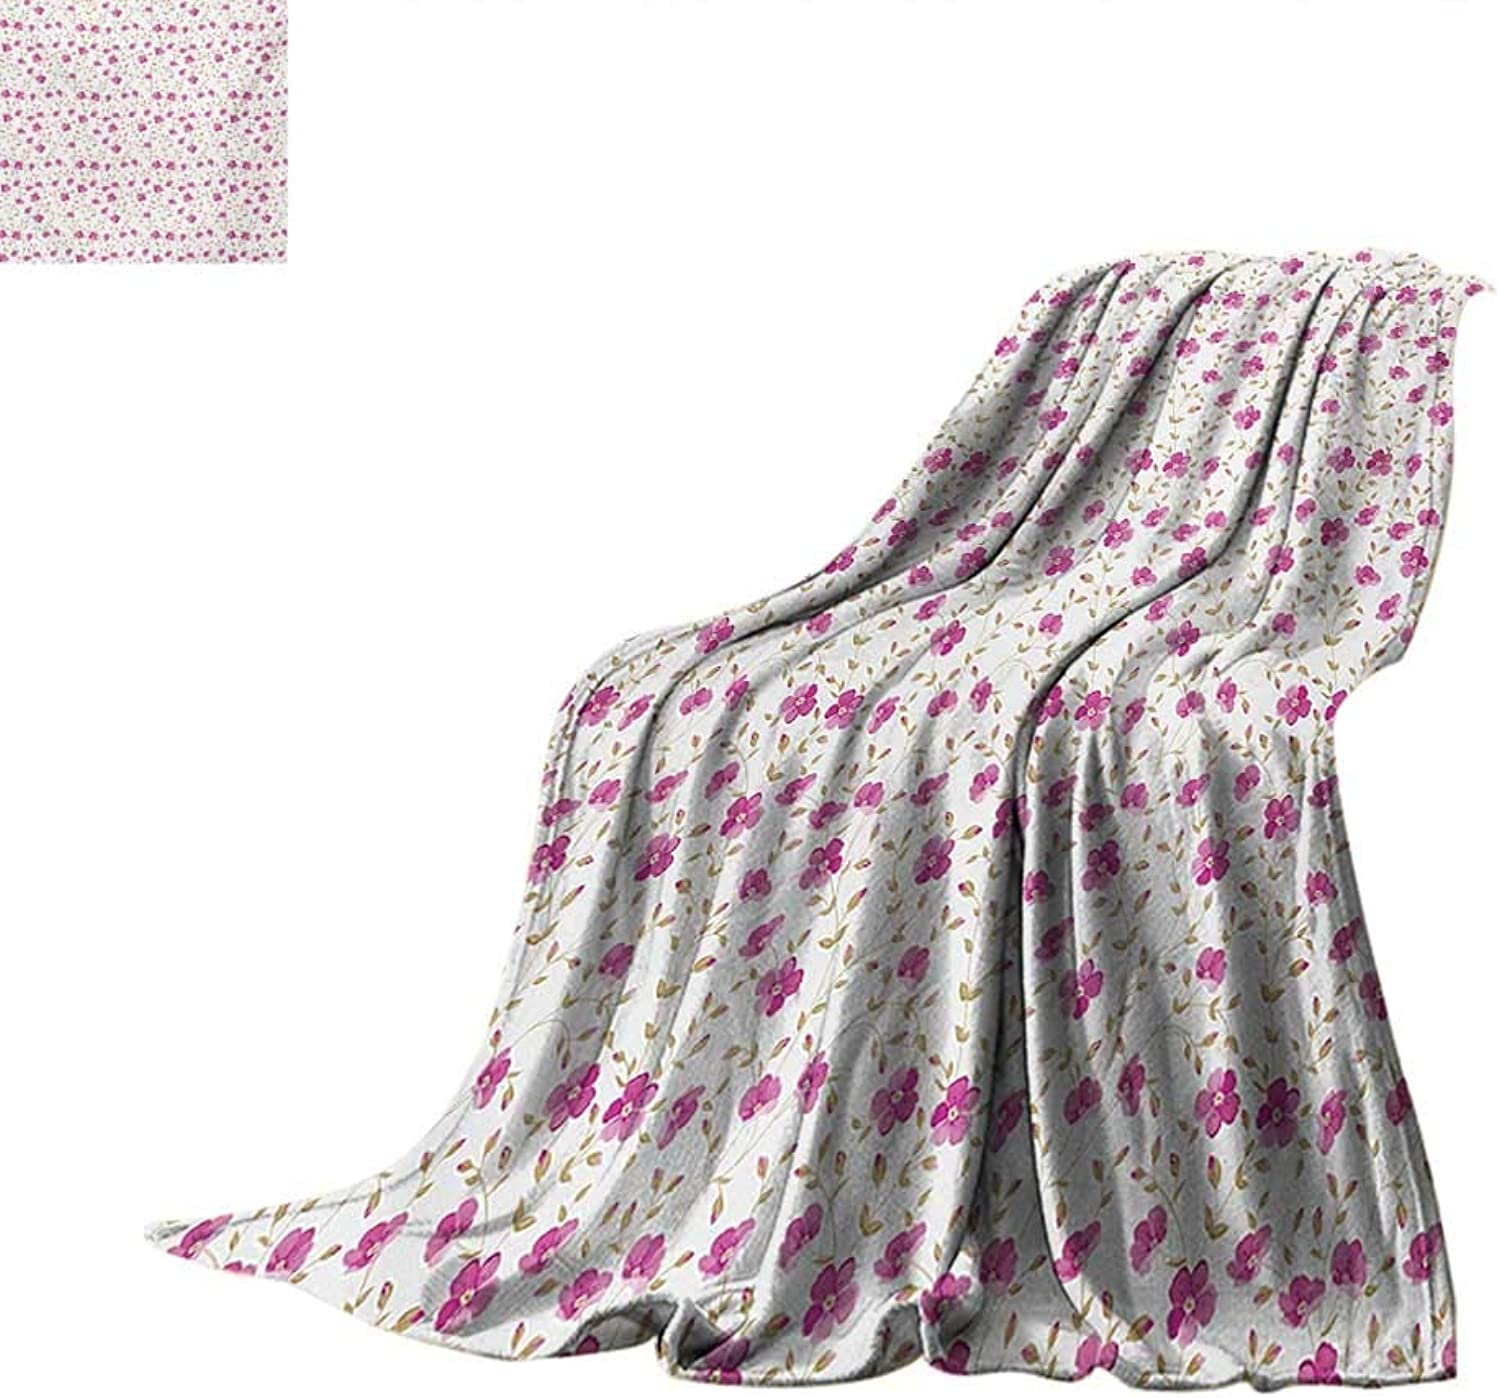 Flowertravel blanketPeony in Vintage Style Girly Sweet Curly Stems Happy Times Engagement Themethrow Blanket for Couch 62 x60  Pink Reseda Green